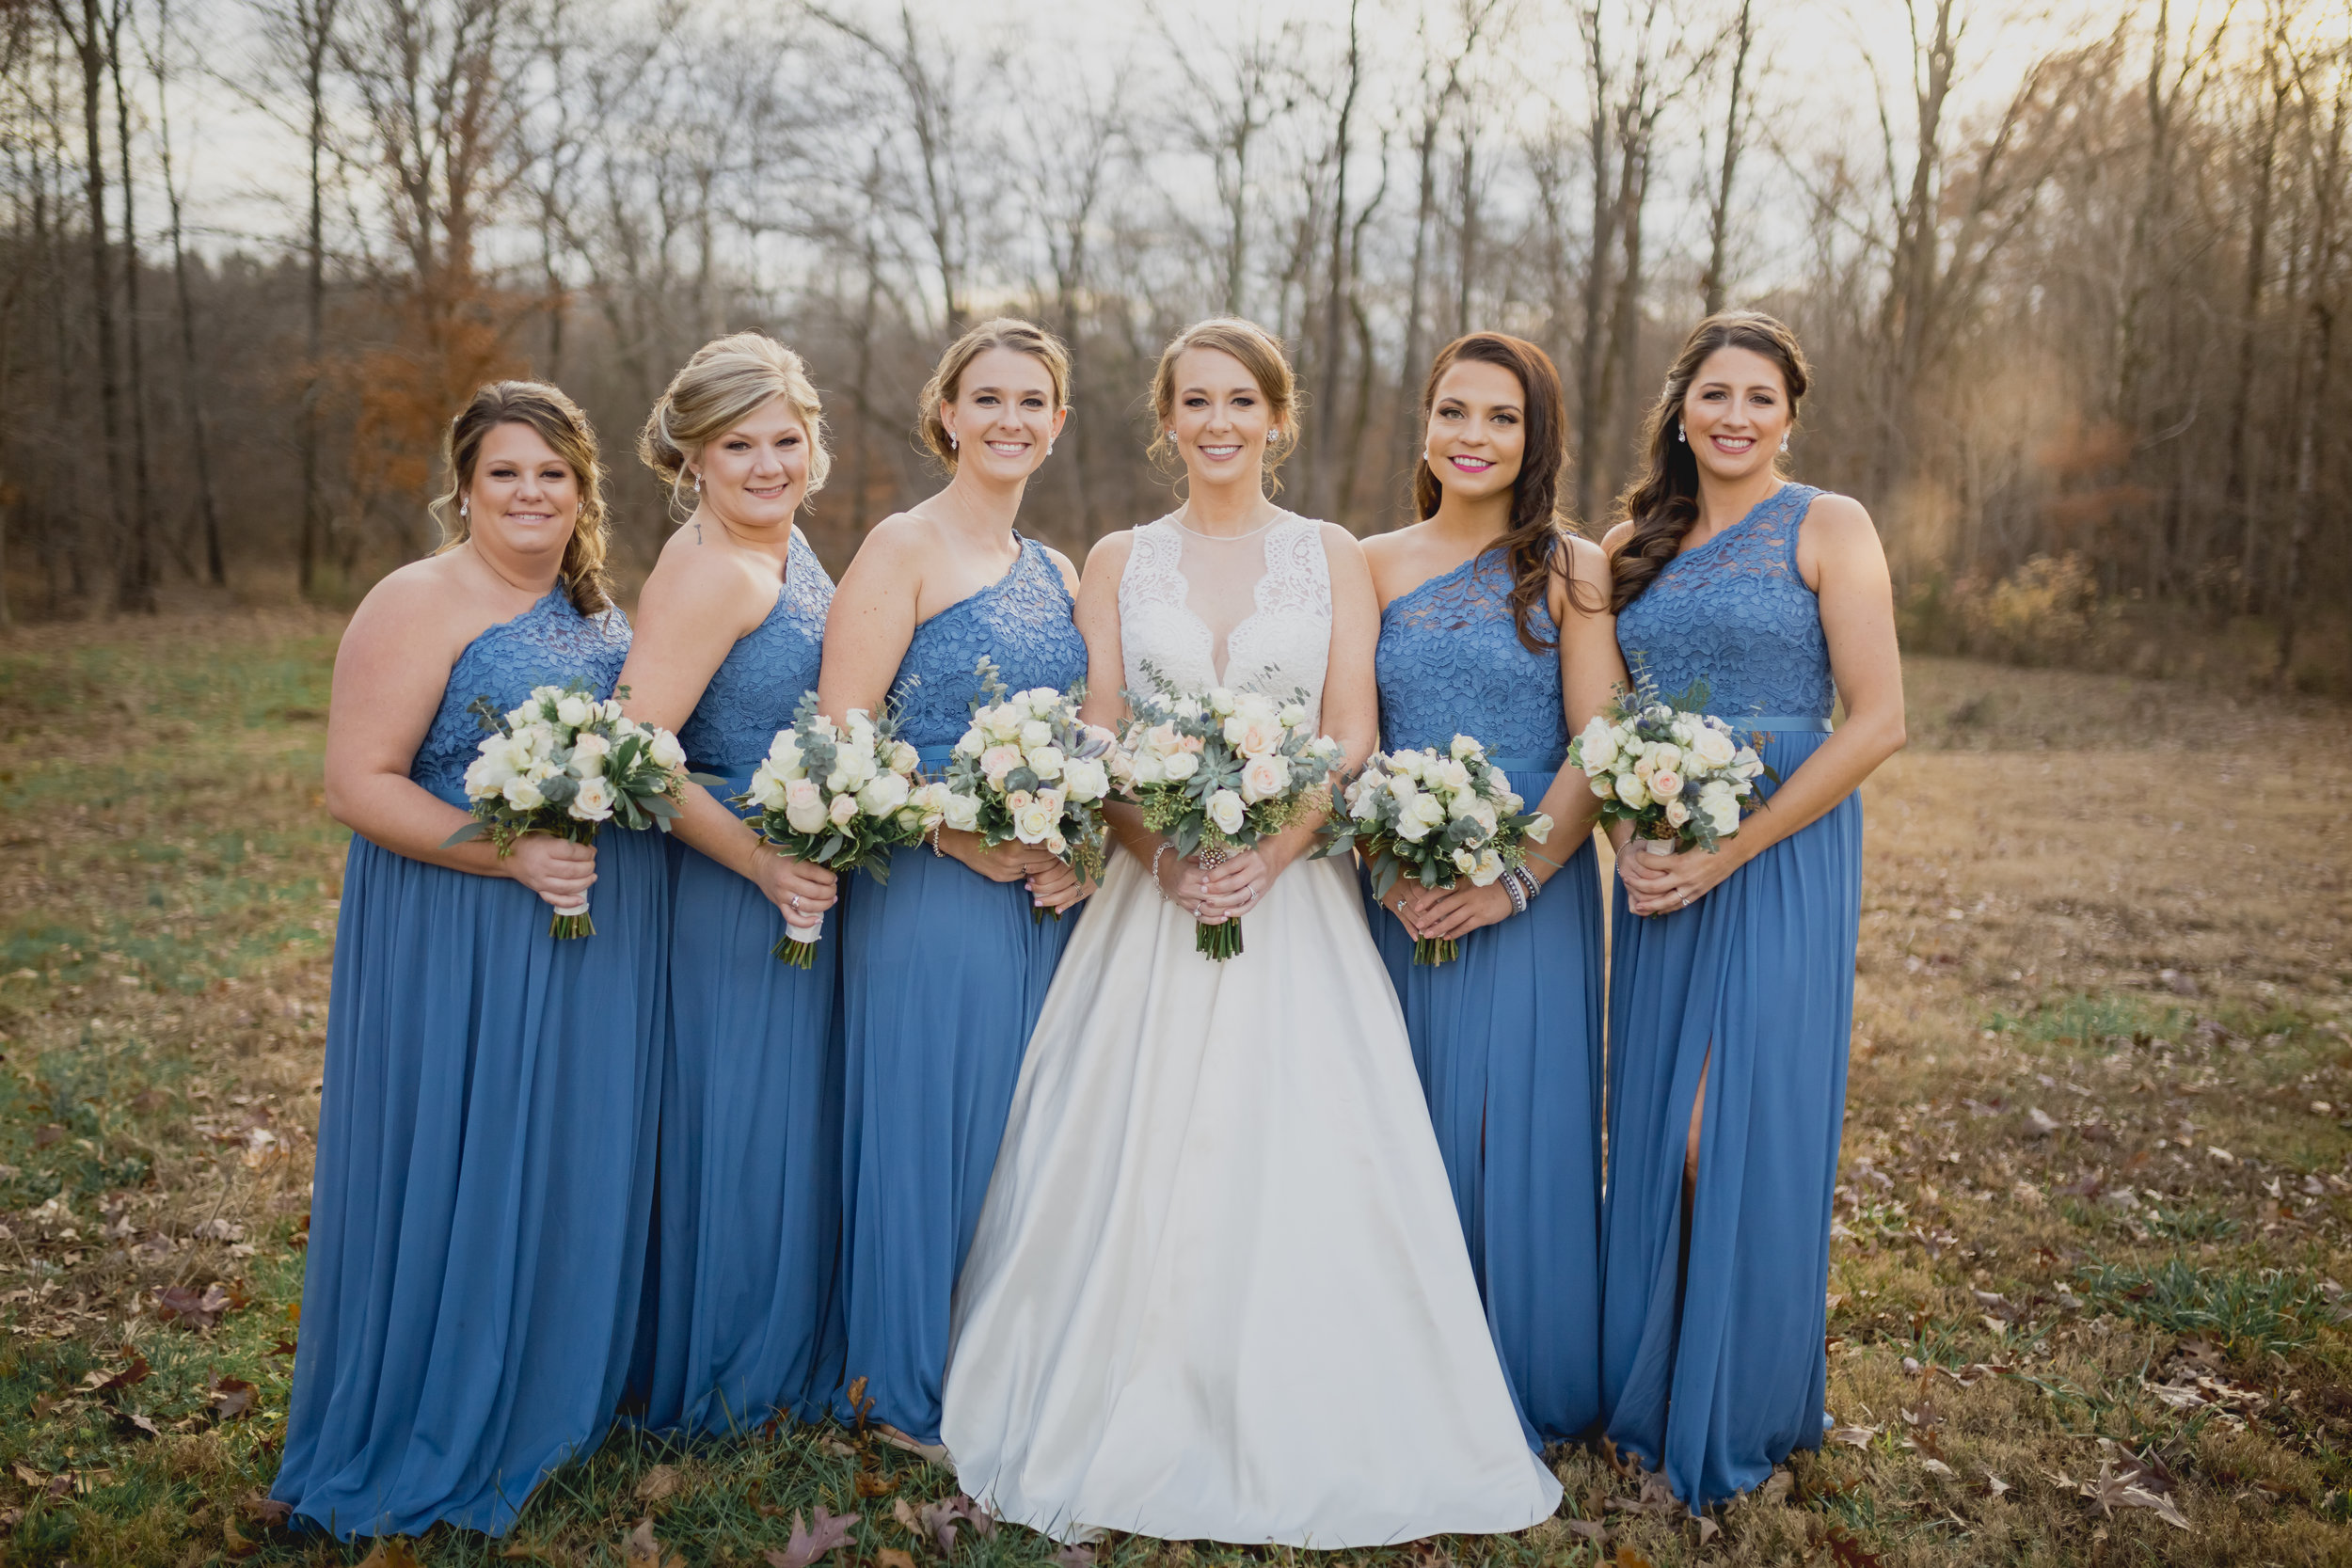 Baxley-Johnson Wedding-PREVIEW-10.jpg